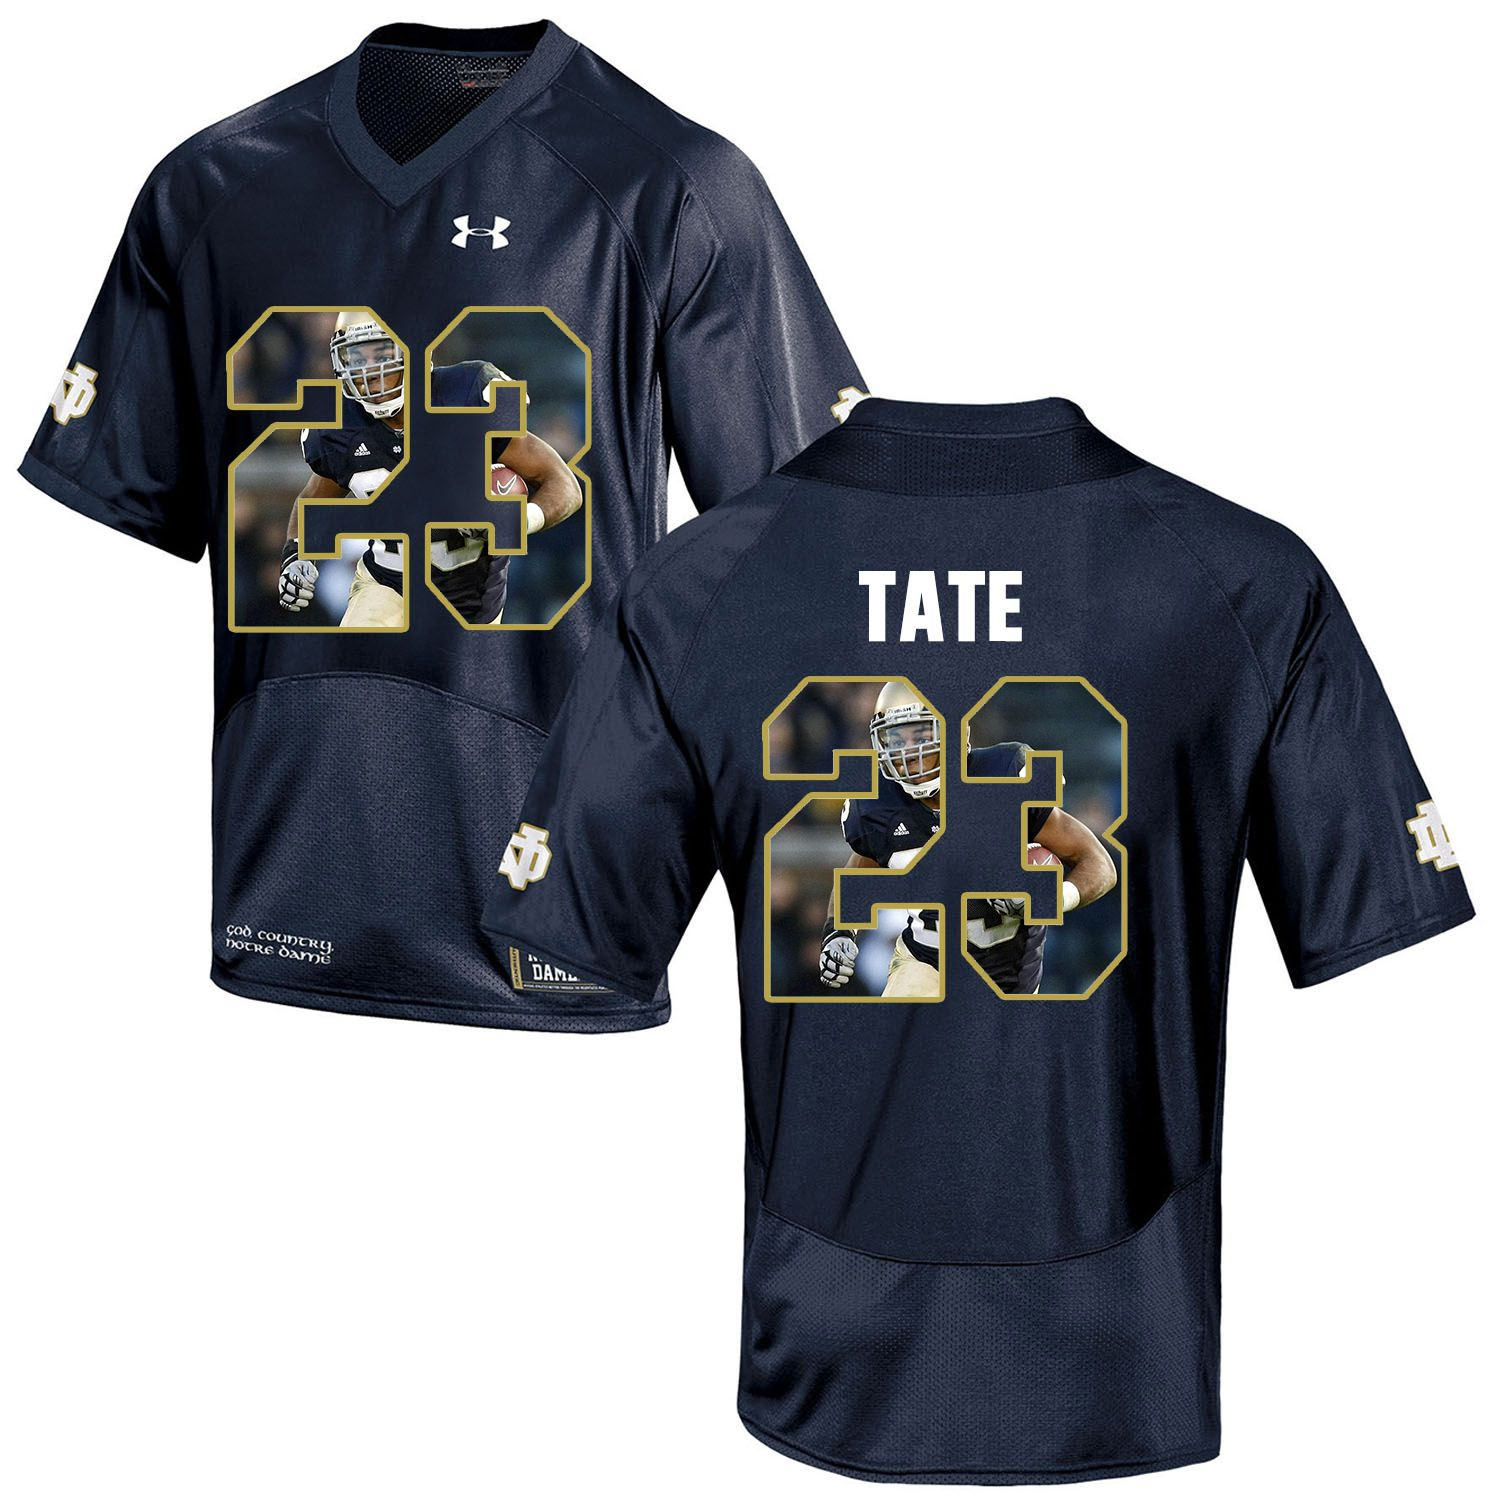 Men Norte Dame Fighting Irish 23 Tate Navy Blue Fashion Edition Customized NCAA Jerseys